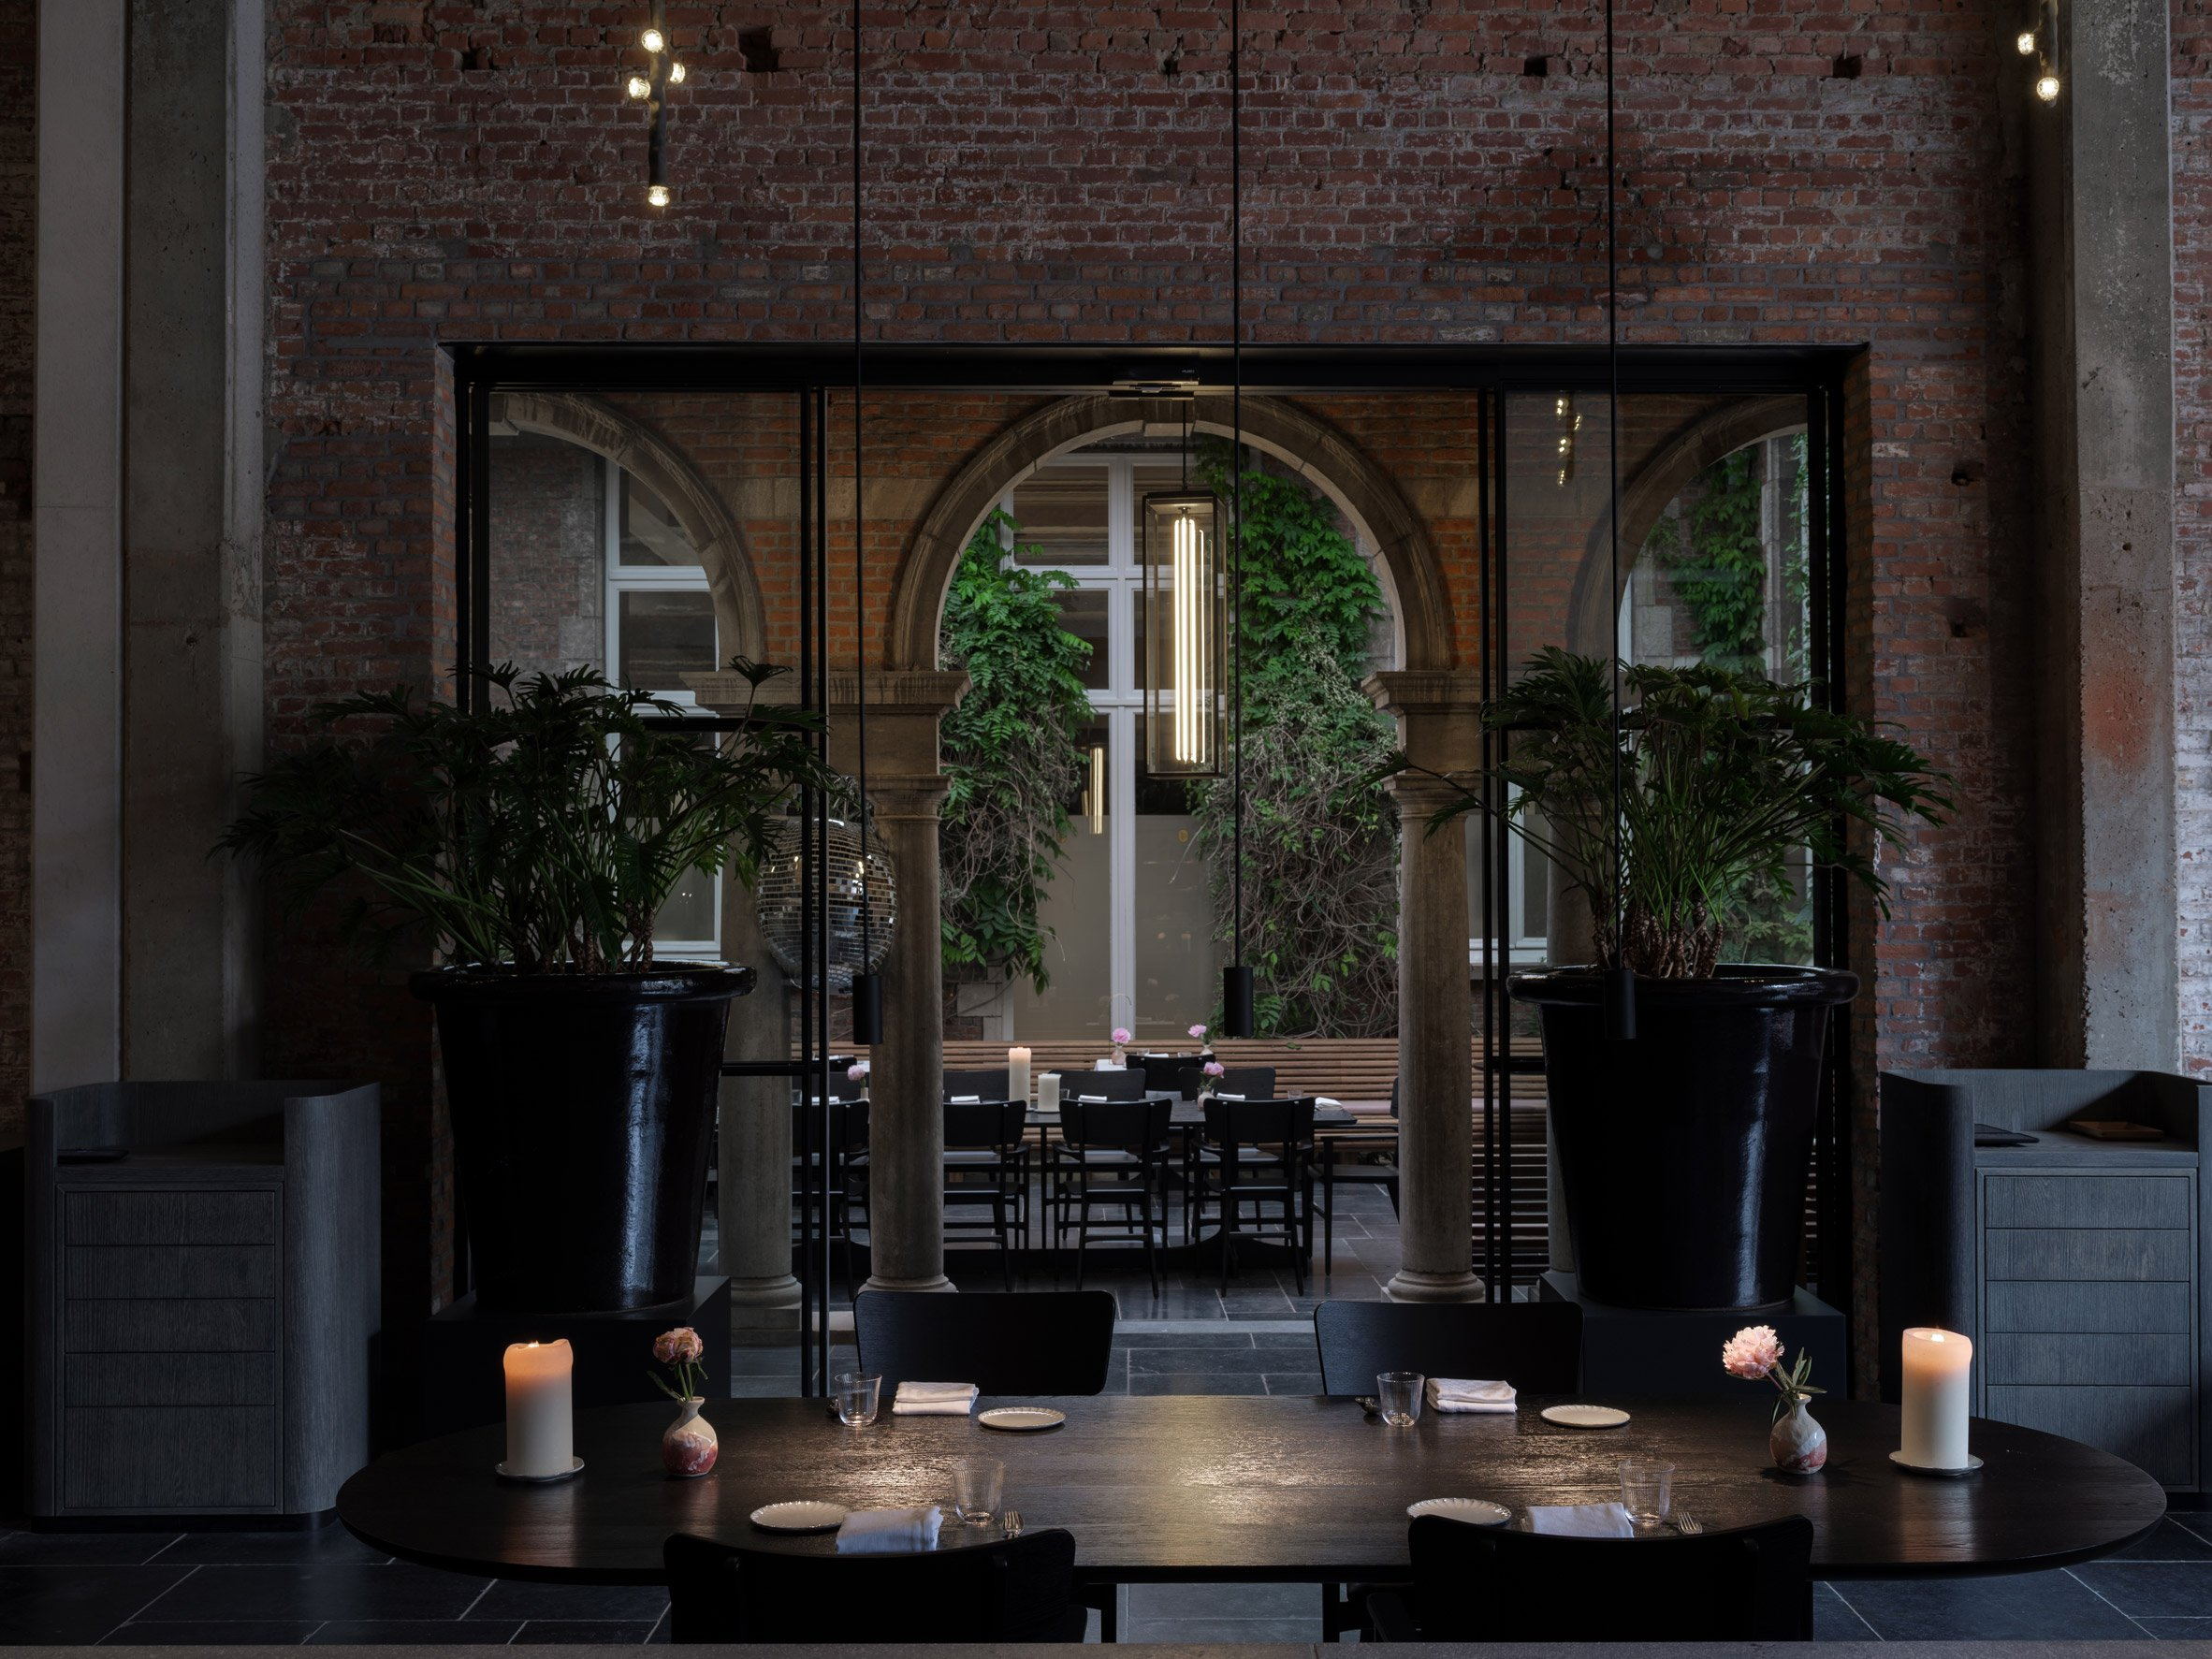 Le Pristine restaurant in Antwerp designed by Space Copenhagen